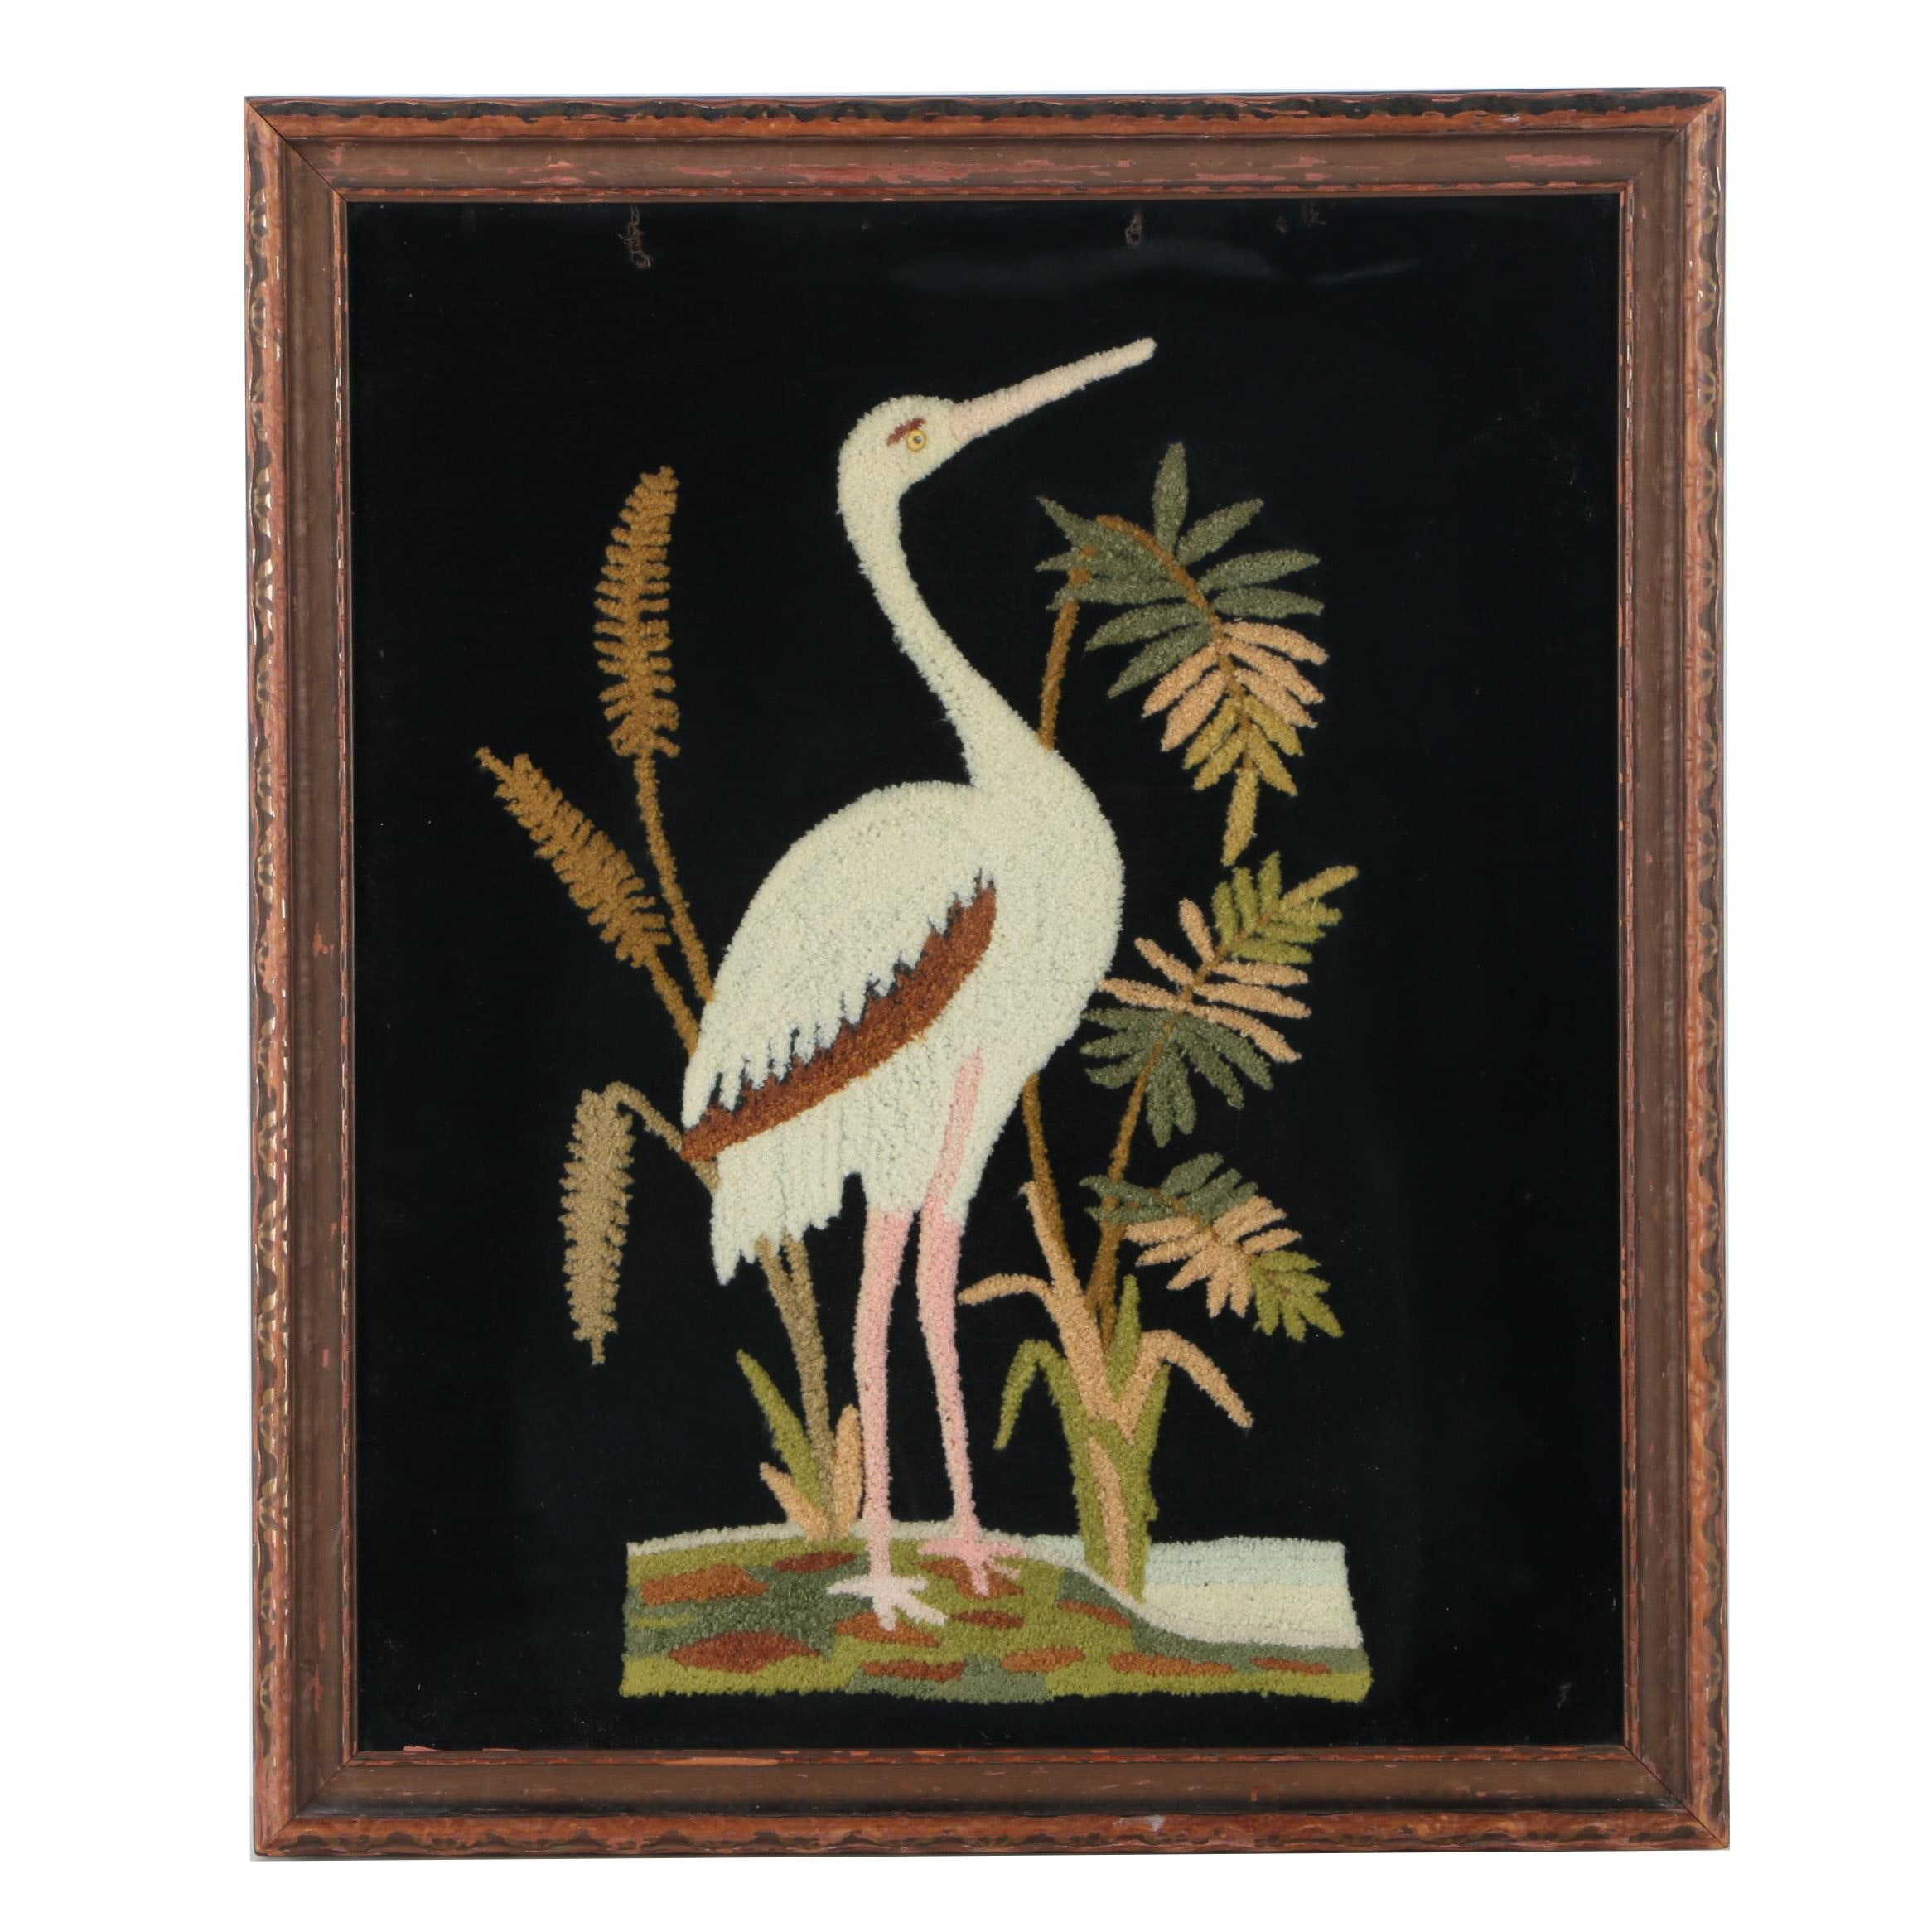 Pile Embroidery of a Crane